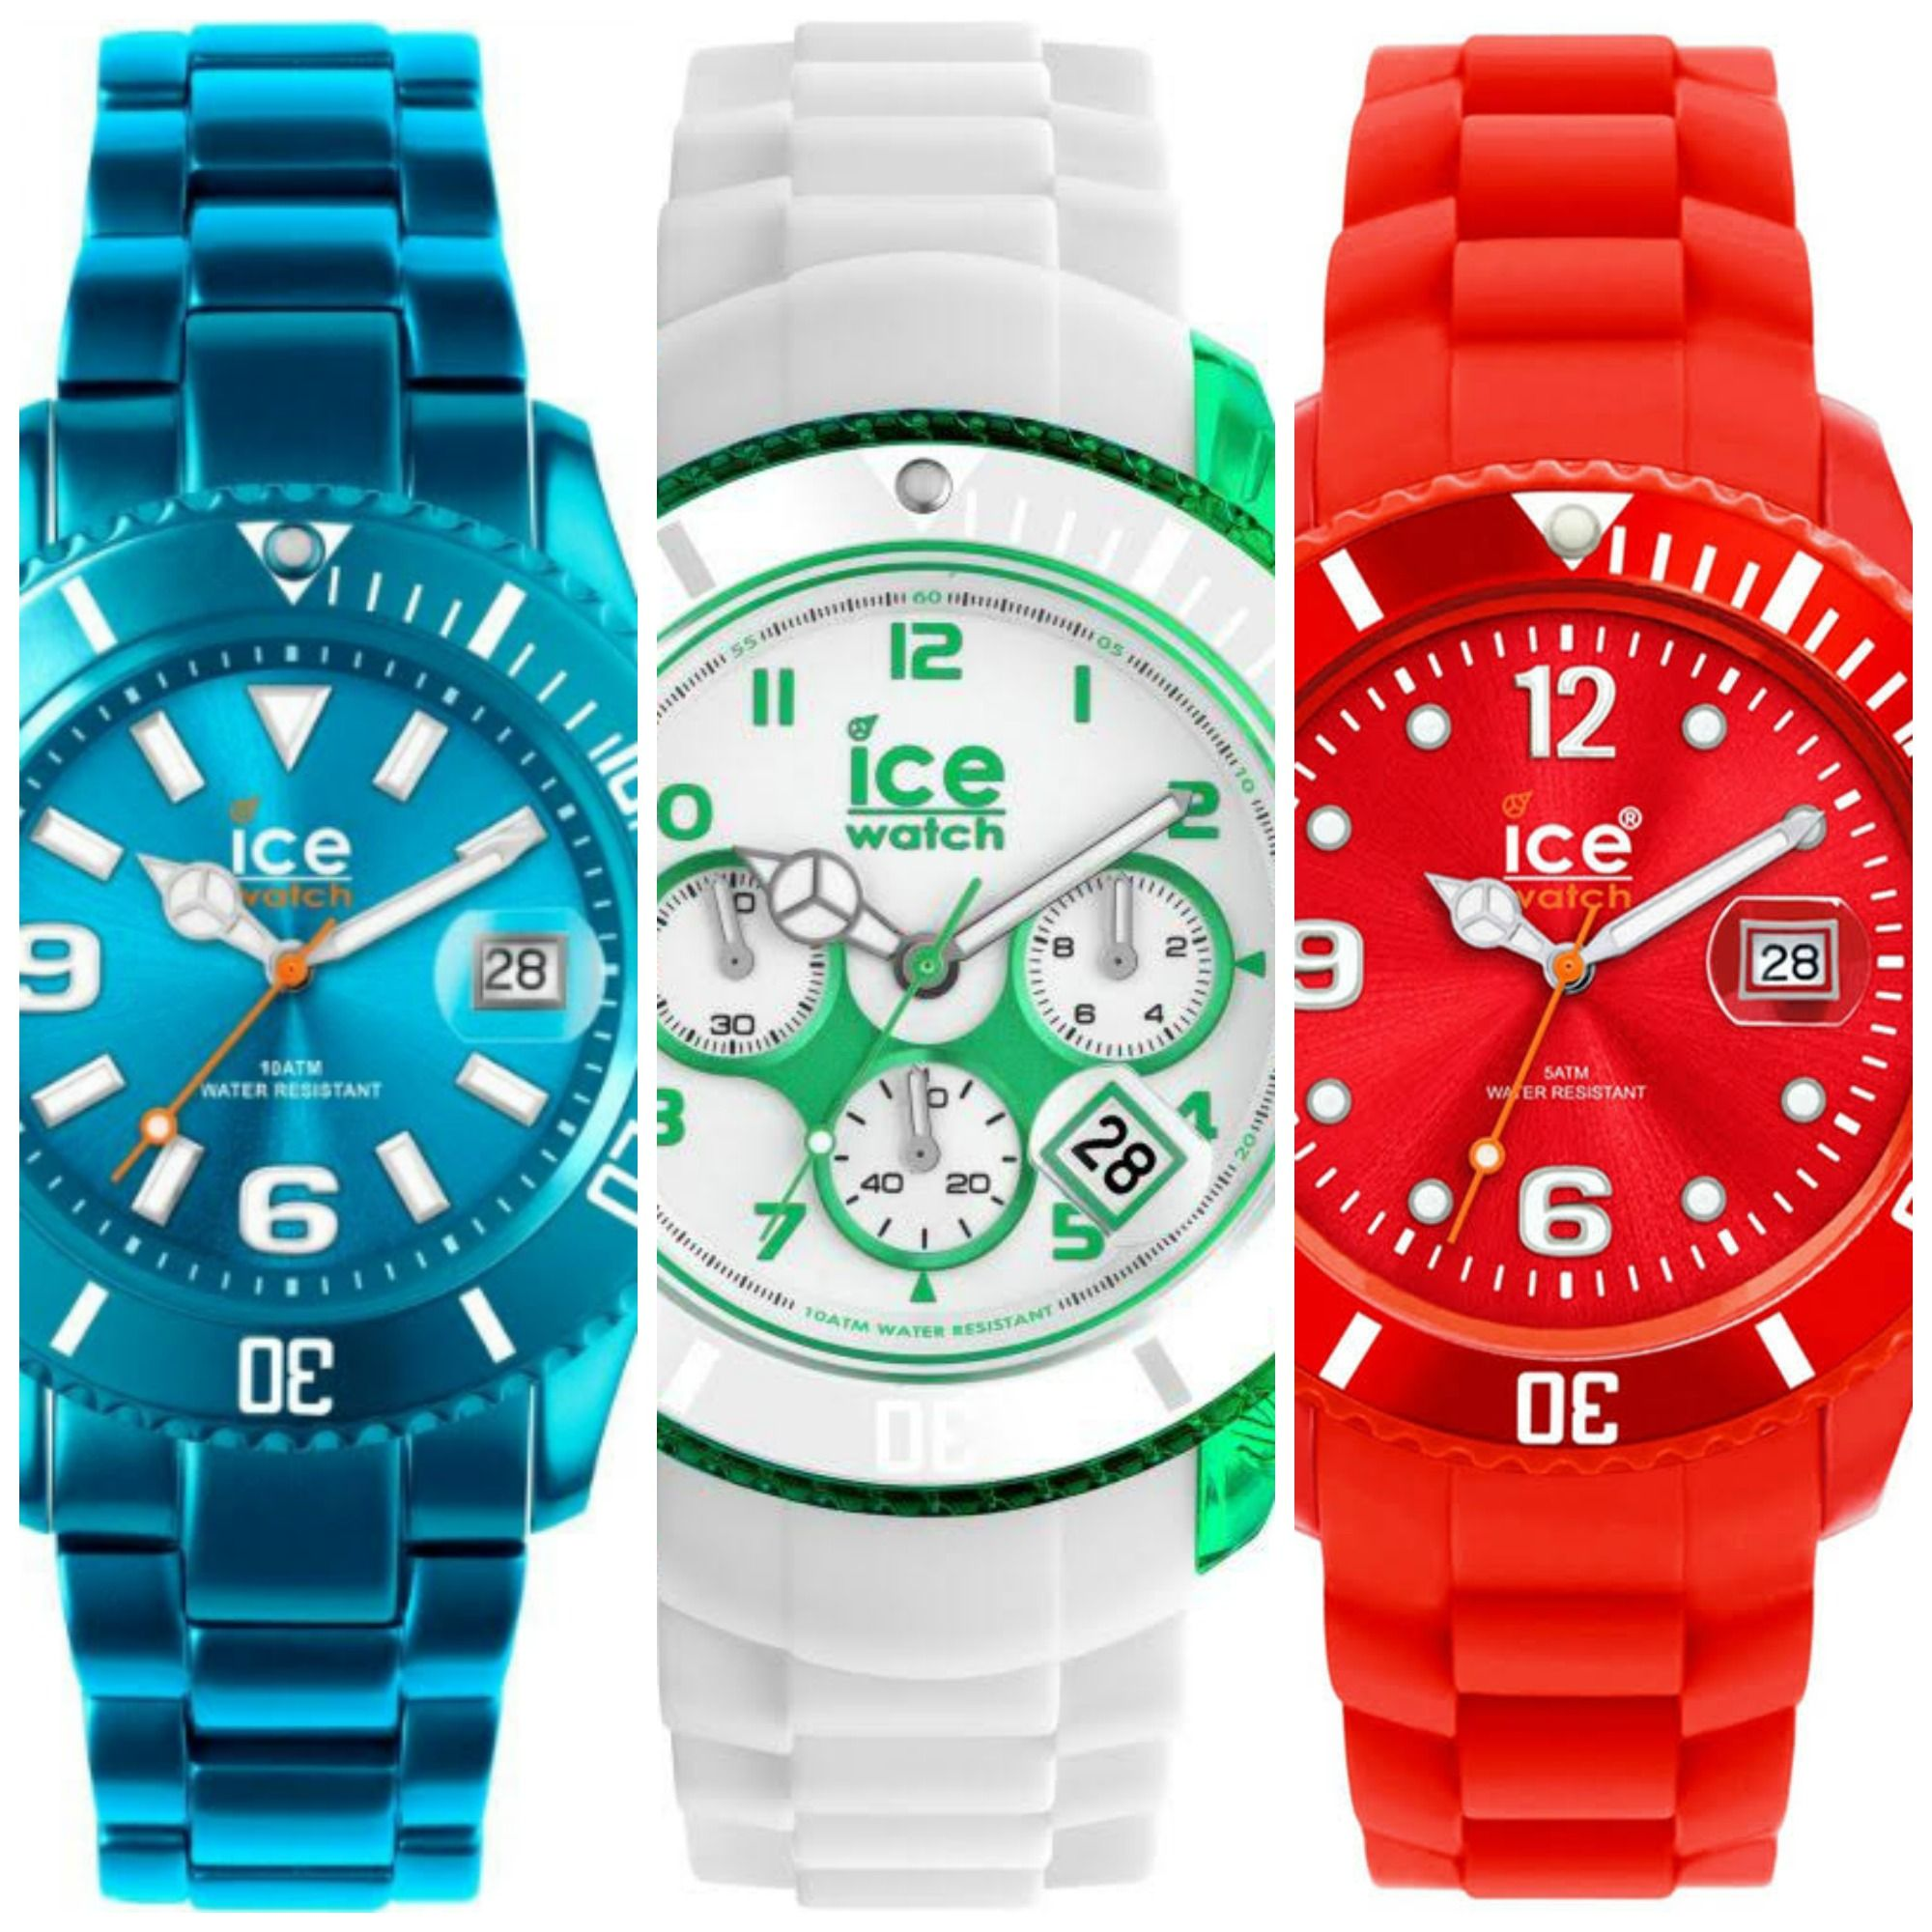 r to share just watches guys wanted handsome looking with this watch you comments fifth